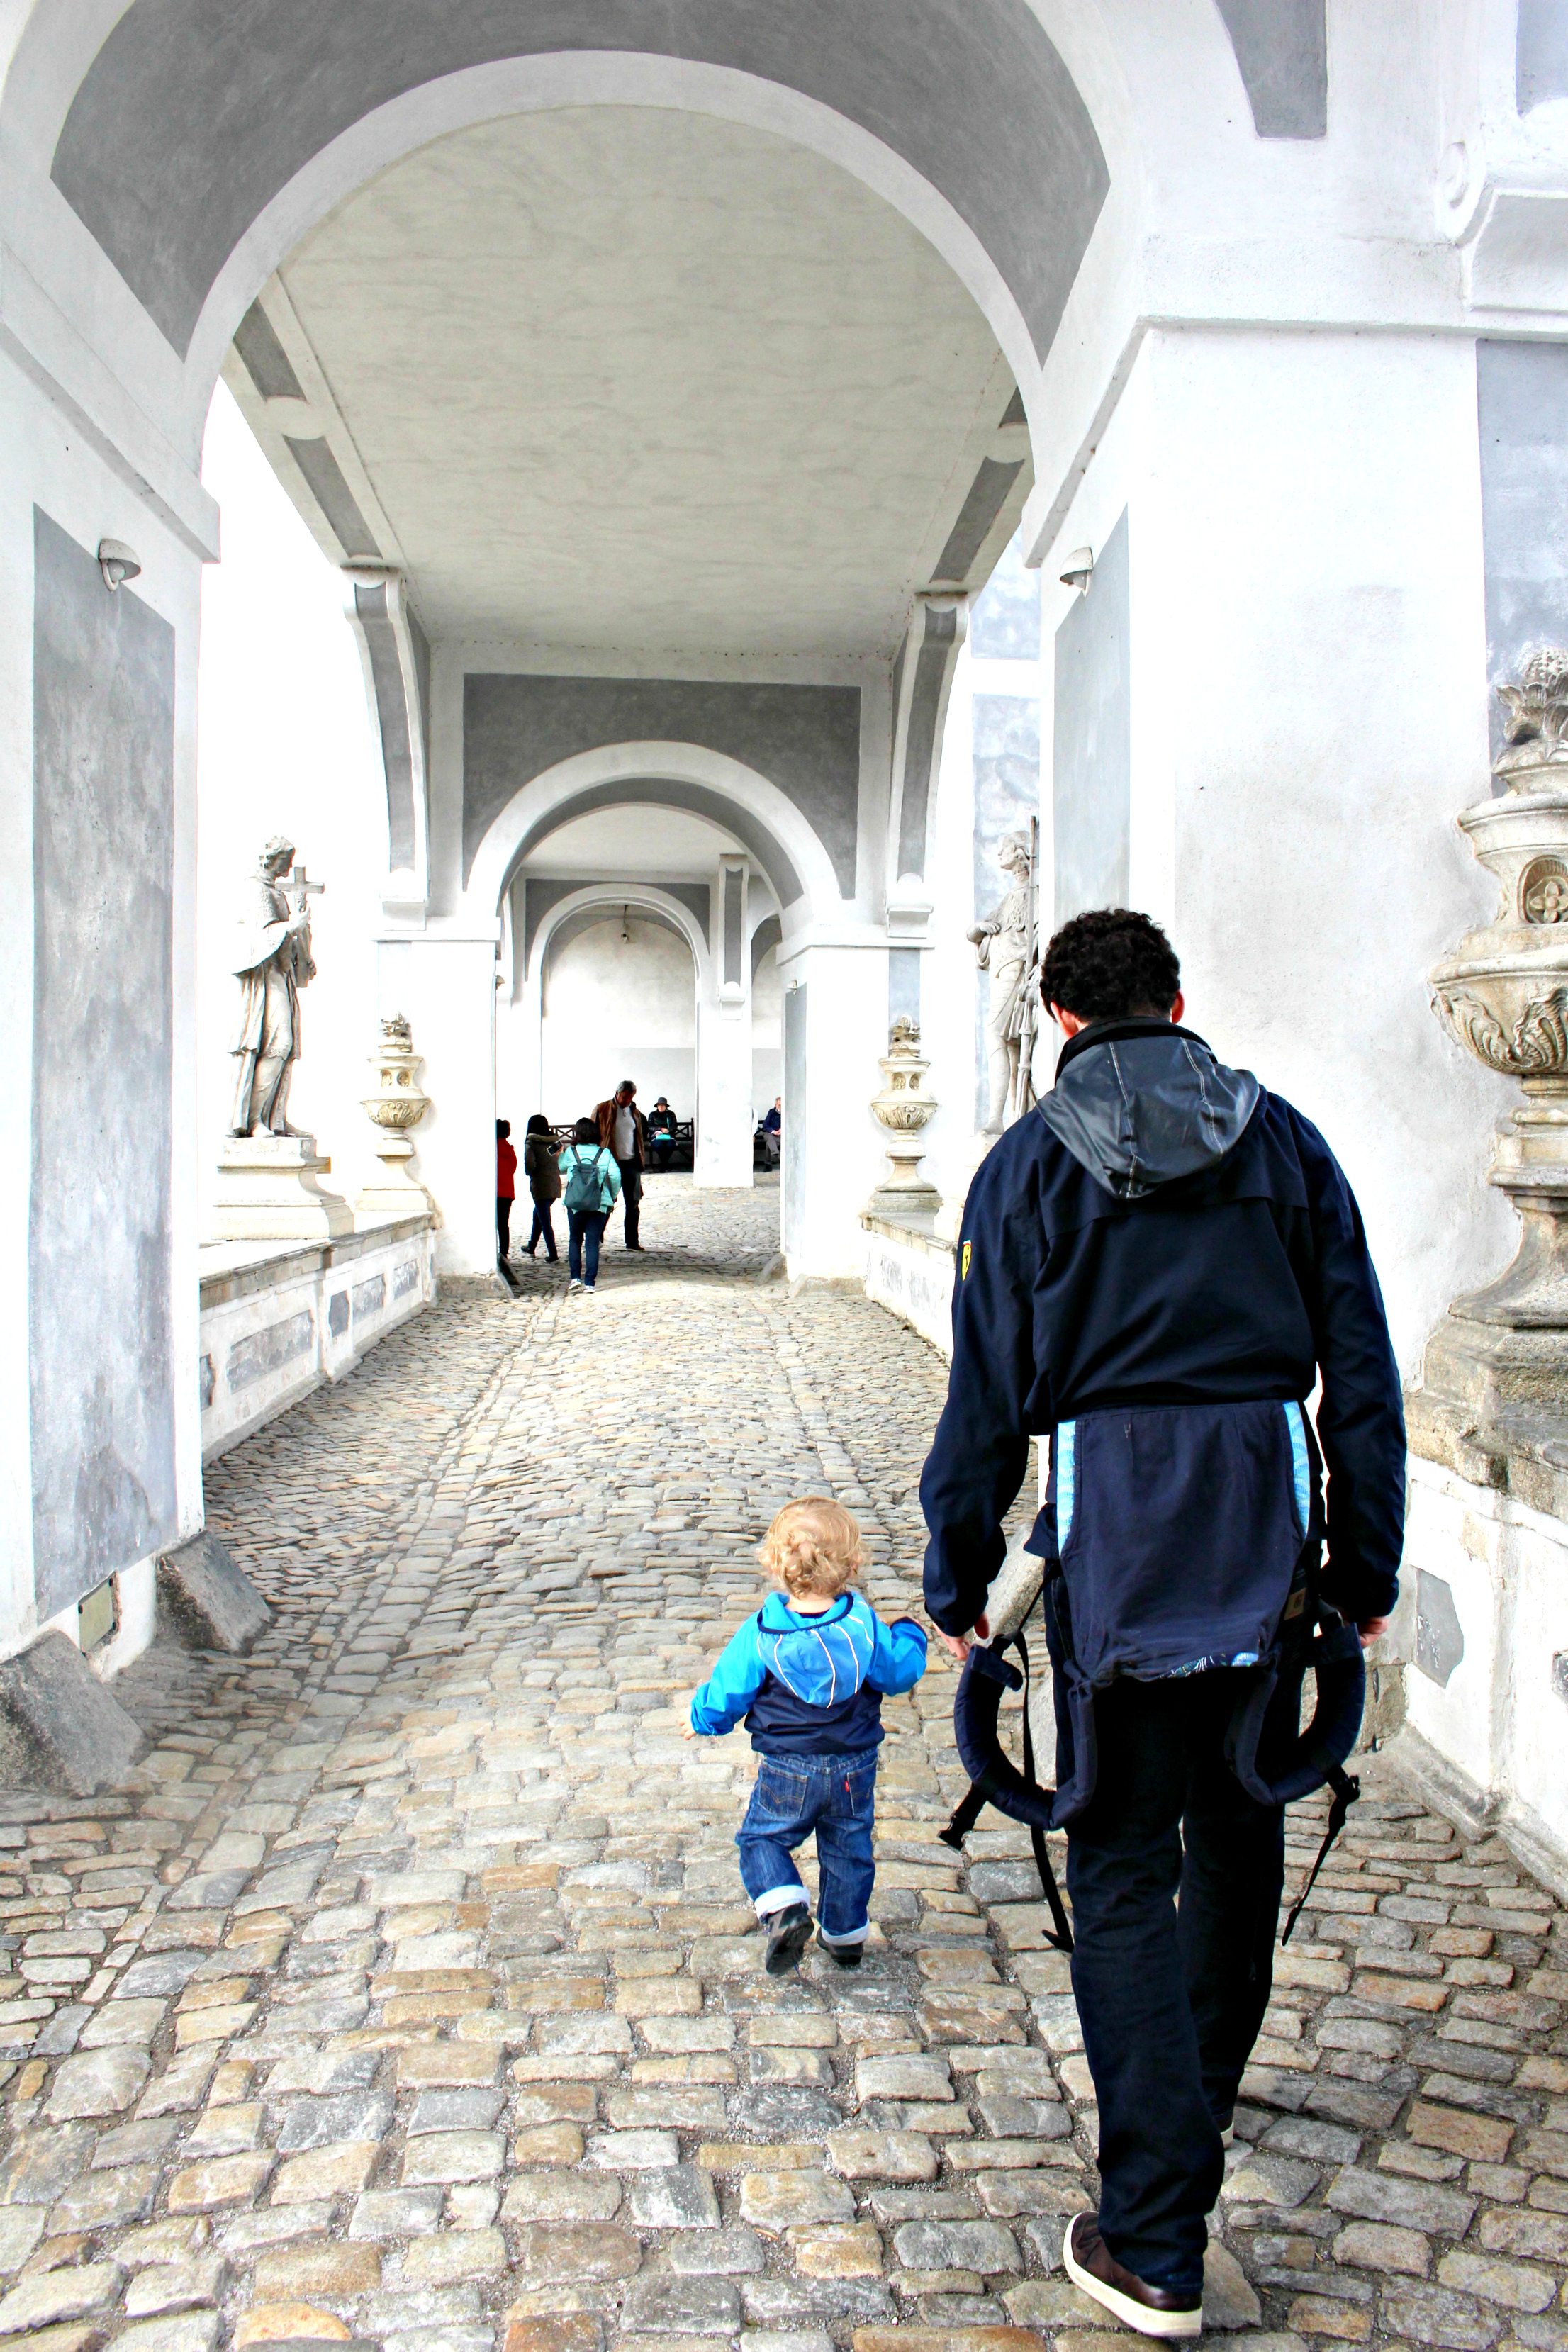 No pictures allowed in the Baroque Theater, but here's L running towards it.